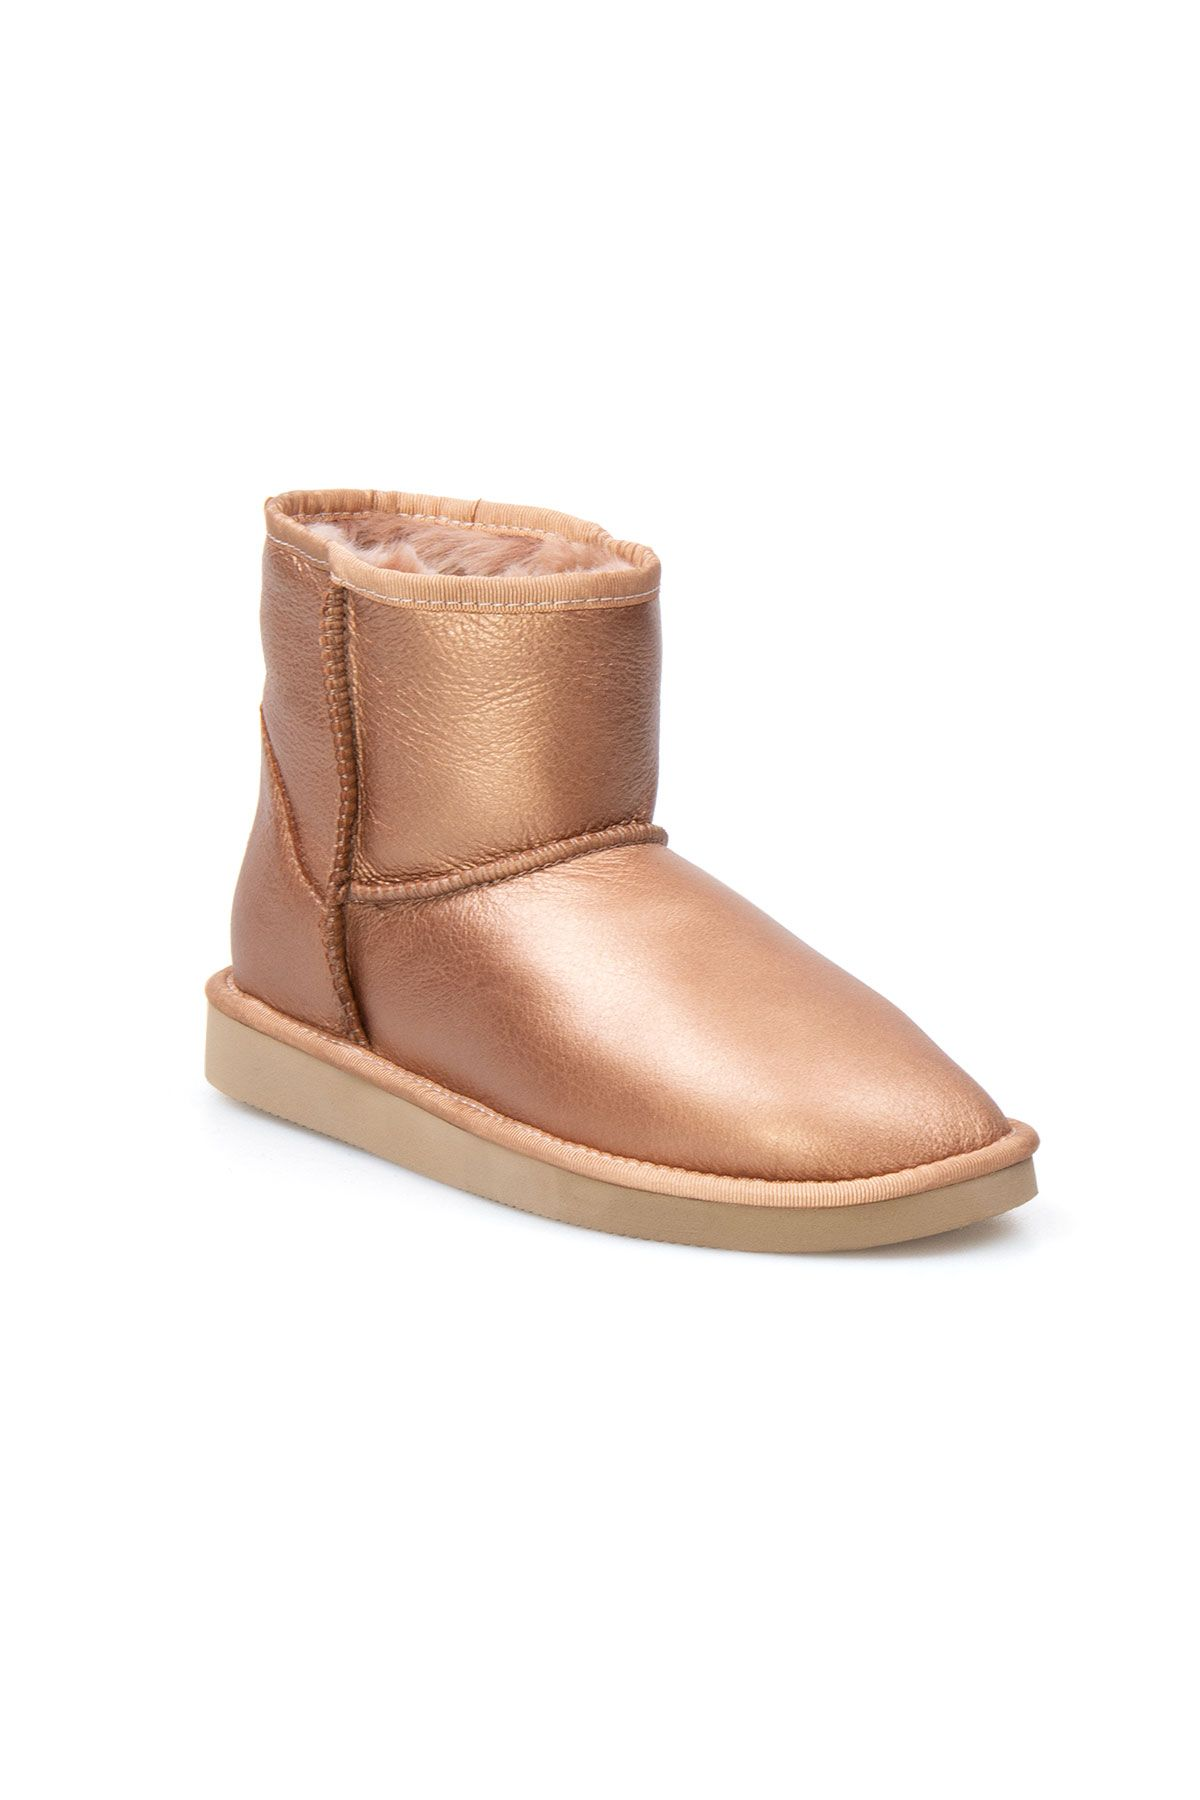 Pegia Genuine Sheepskin Metallic Women's Boots 191108 Ginger